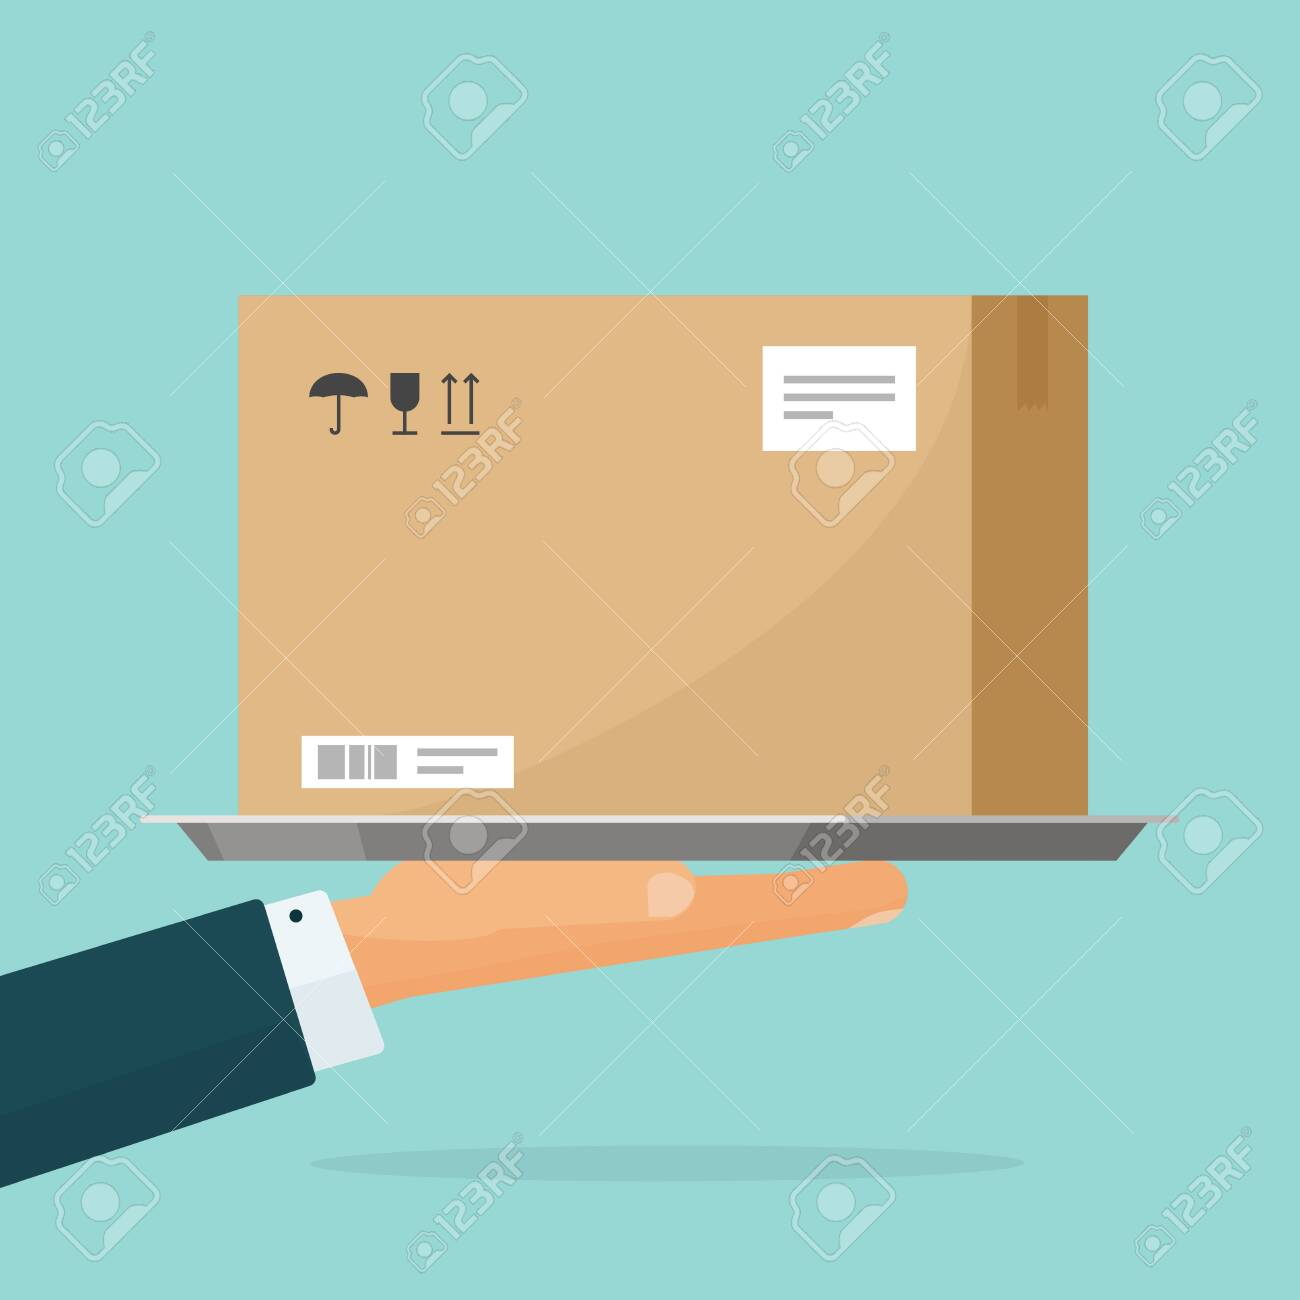 Courier deliver parcel box vector illustration, flat cartoon person hand holding carton package, concept of delivering service - 120161887